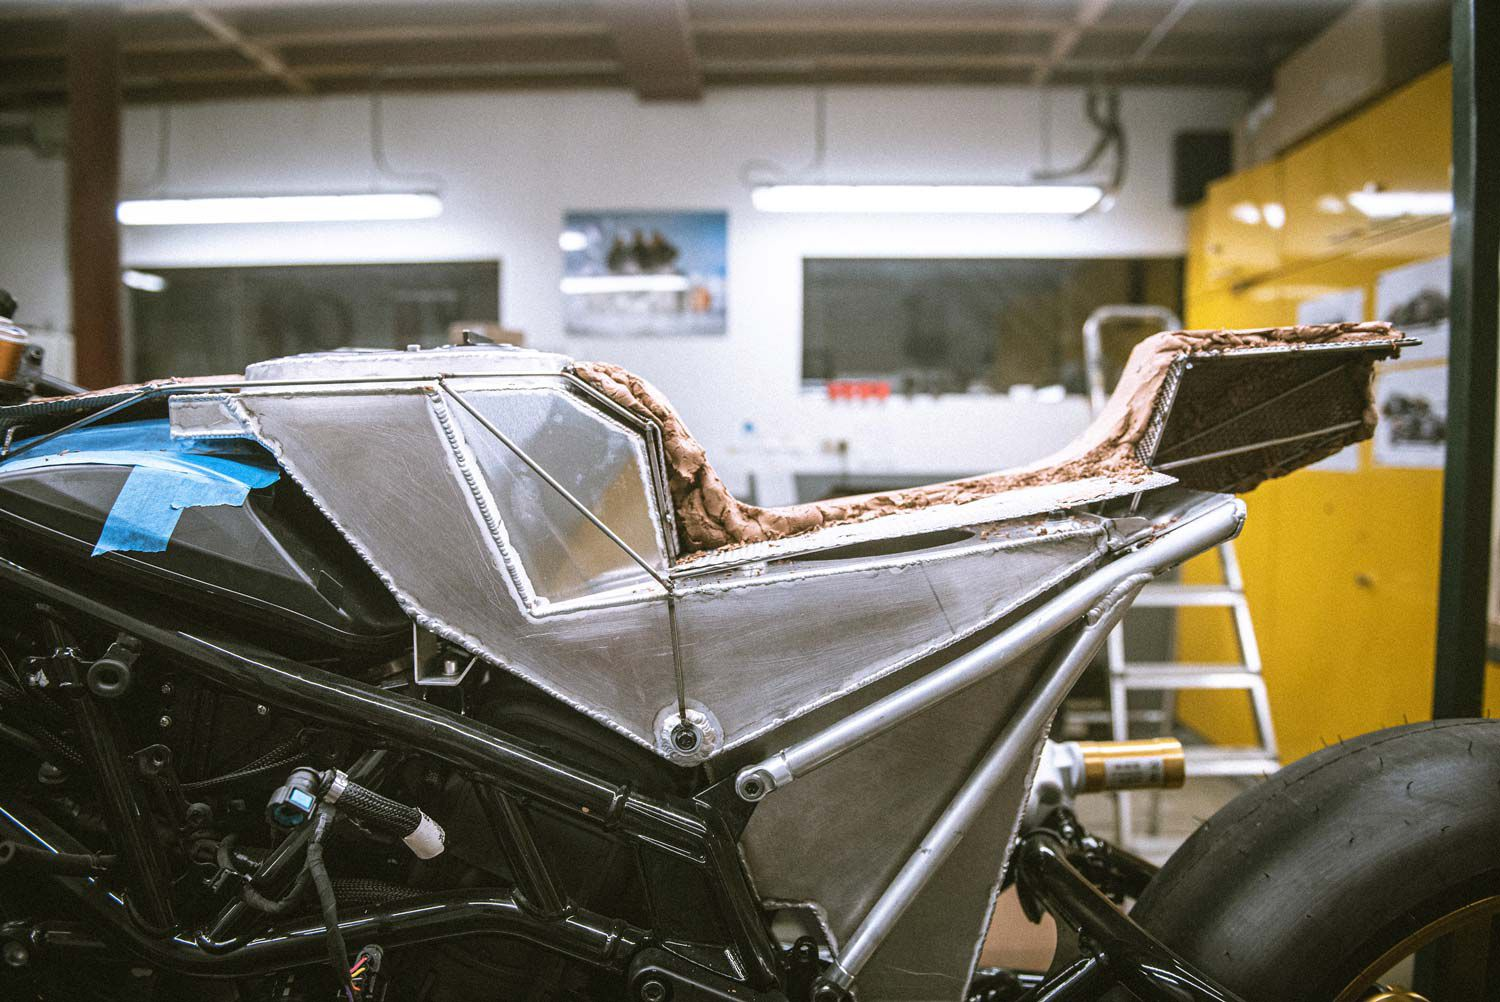 Workhorse Speed Shop is working on two custom builds based on Indian's FTR 1200, but all we know is in these teaser shots.